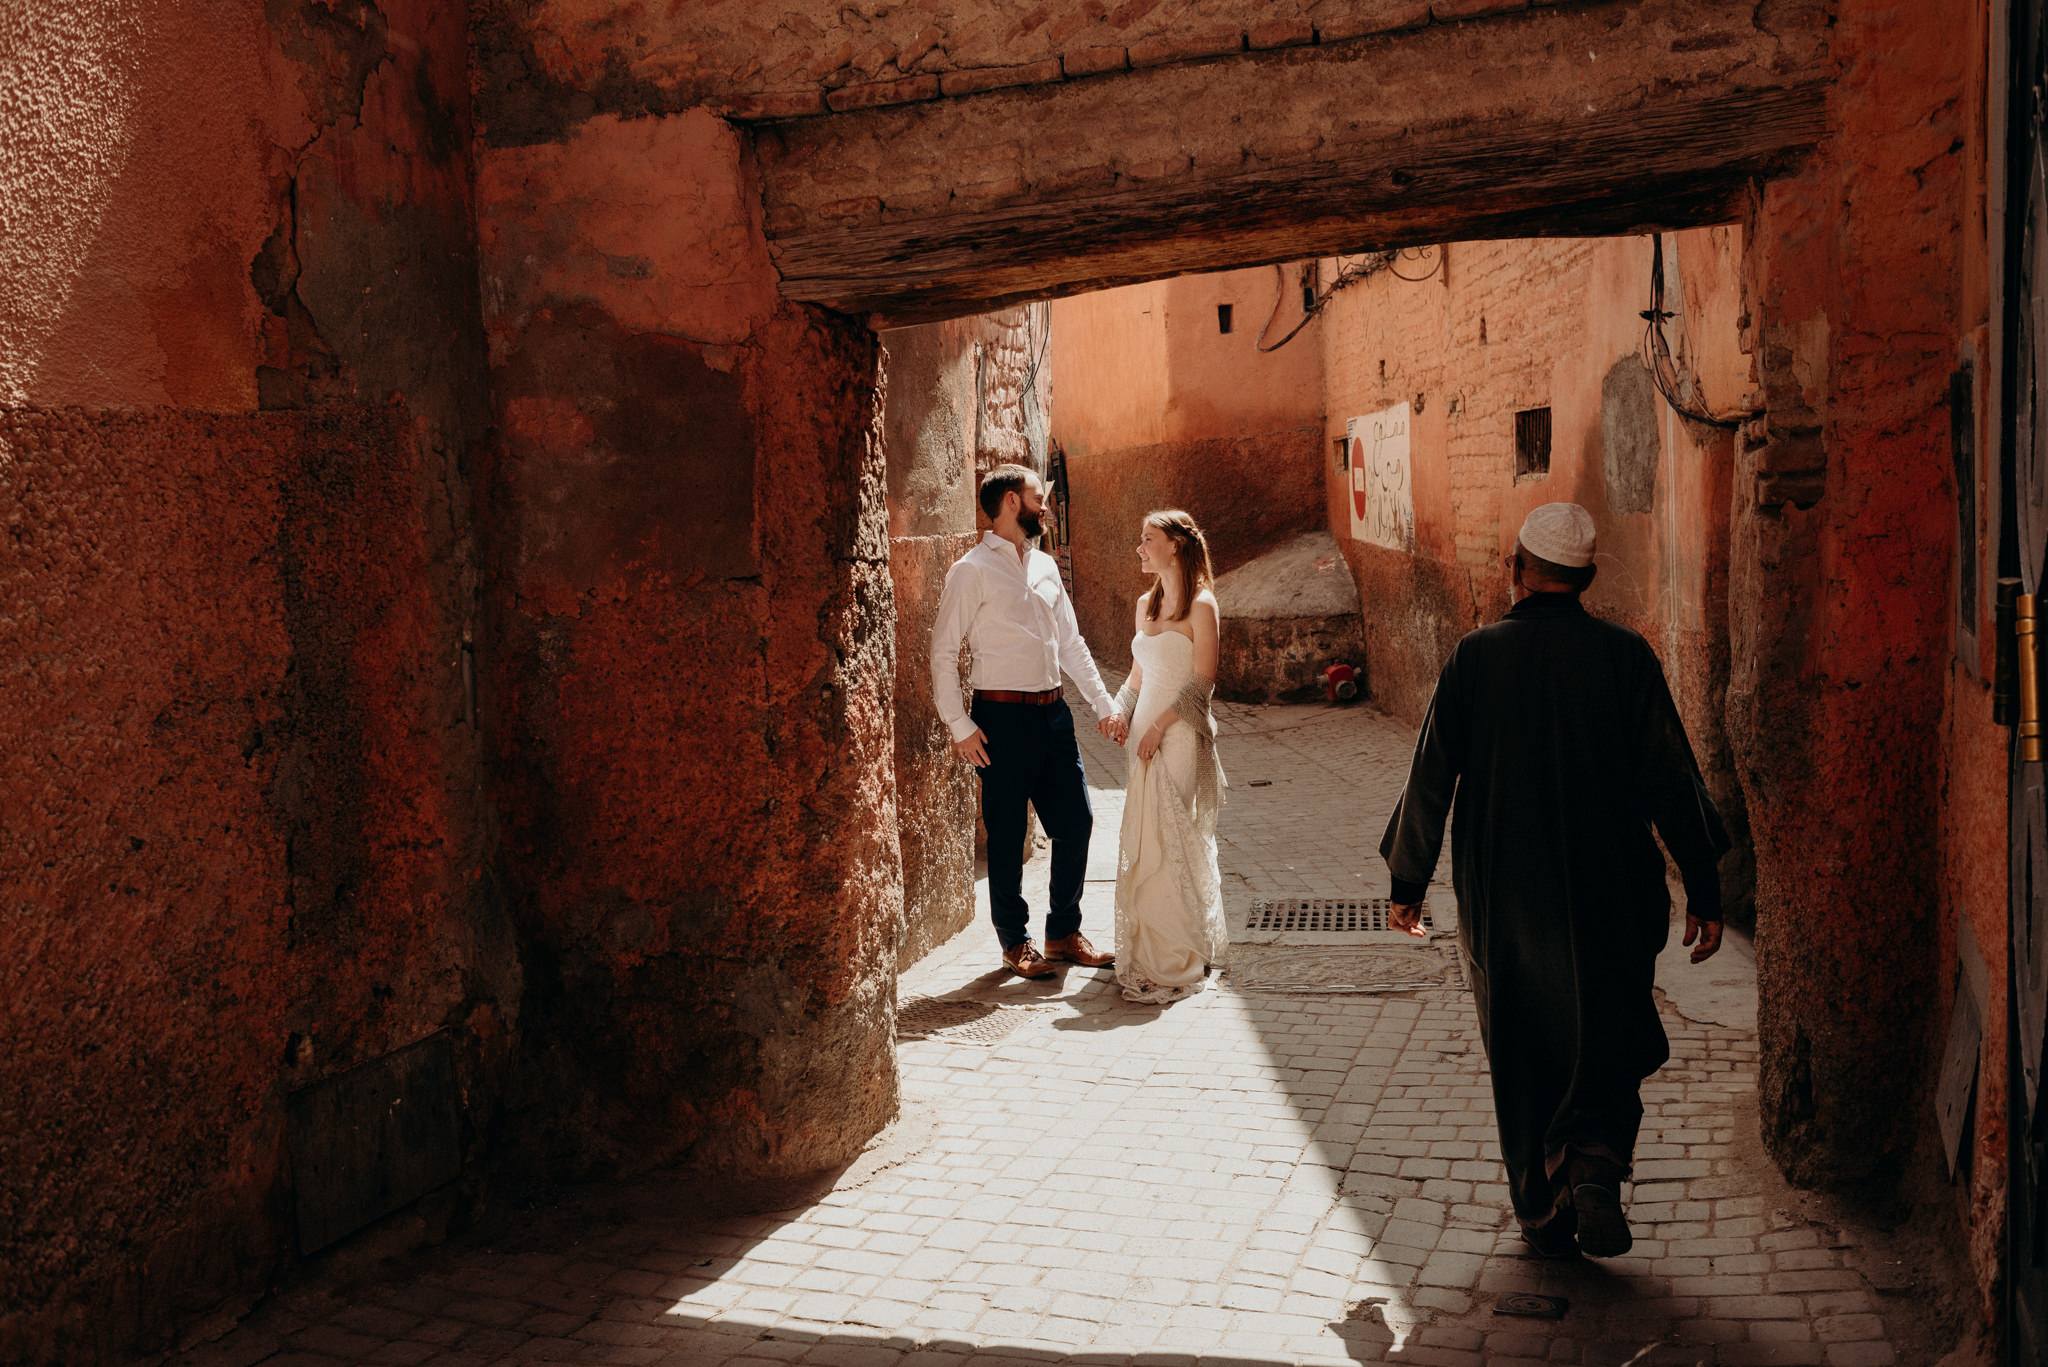 Bride and groom standing in light in the alleyways of the medina in Marrakech